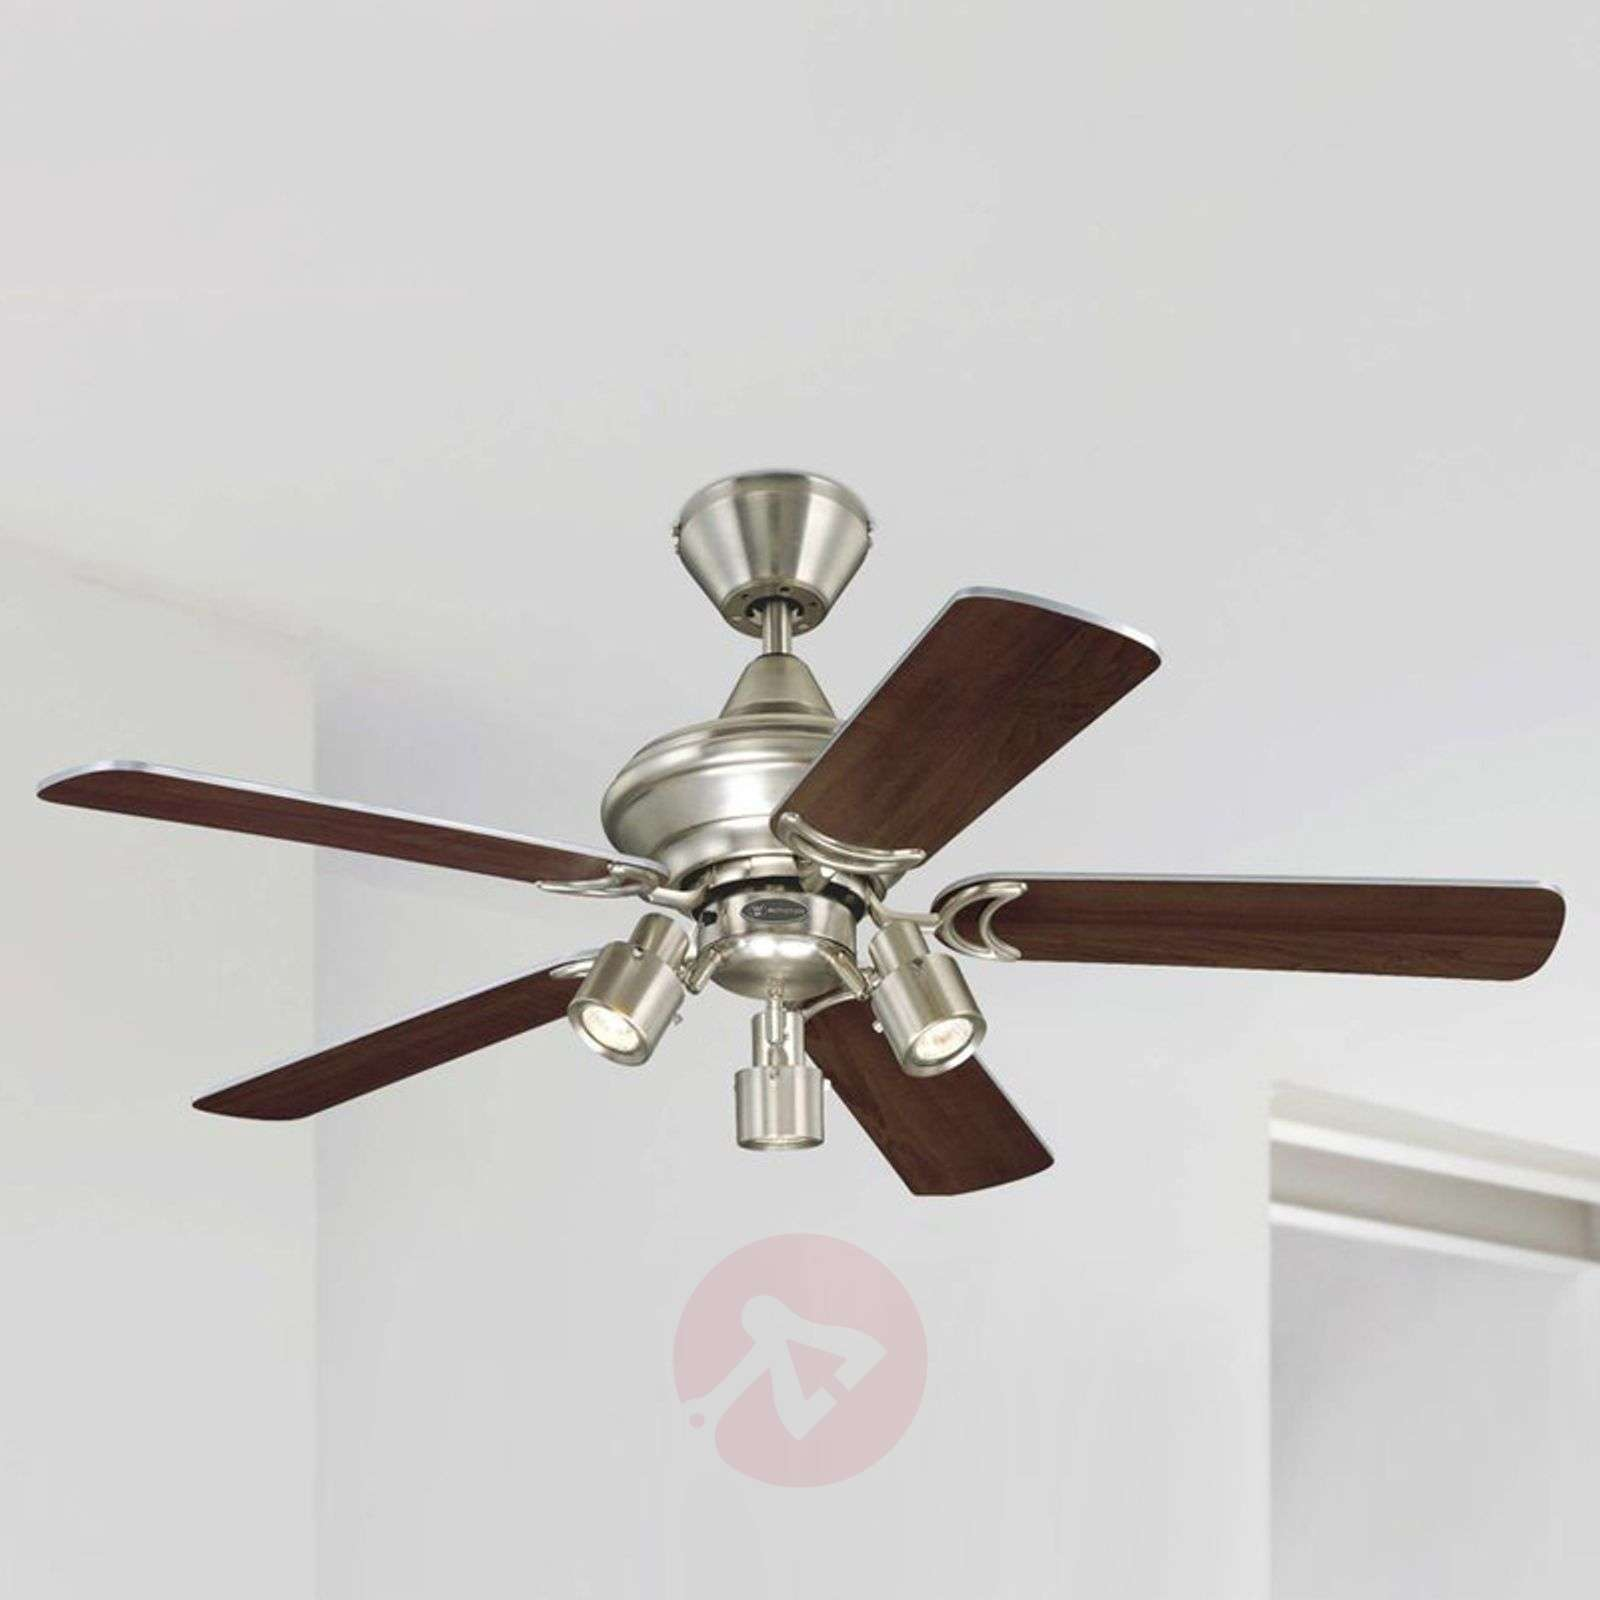 Elegant Kingston ceiling fan, two-colour blades-9602010-02